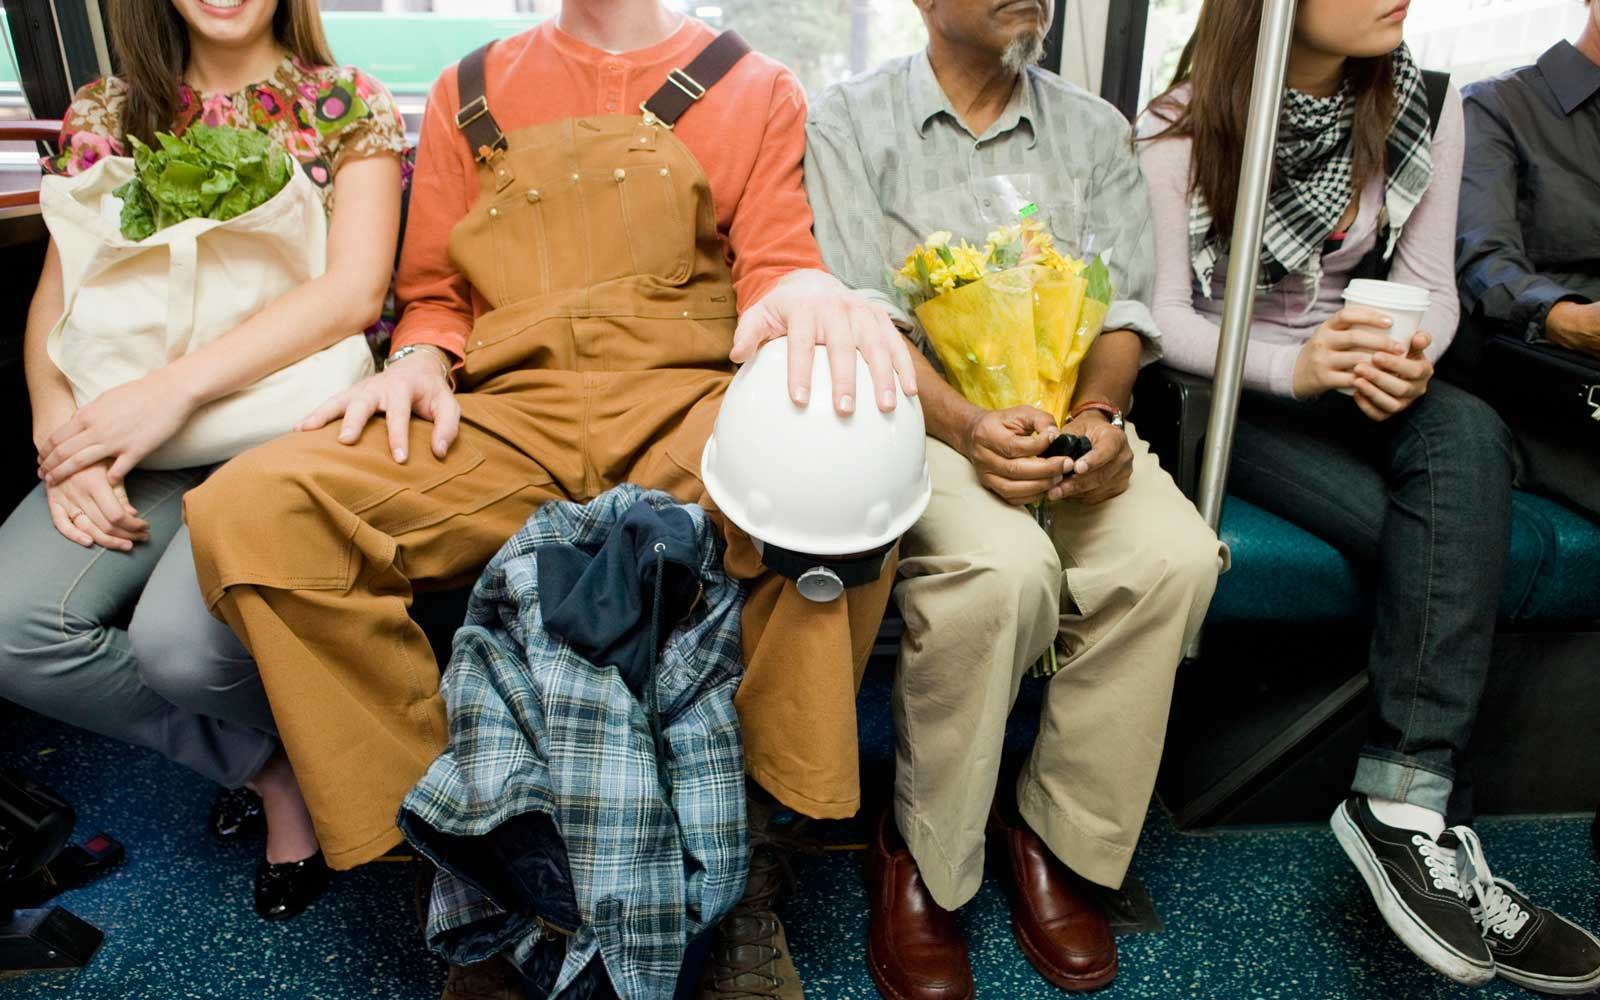 Madrid takes a stand against 'manspreading'